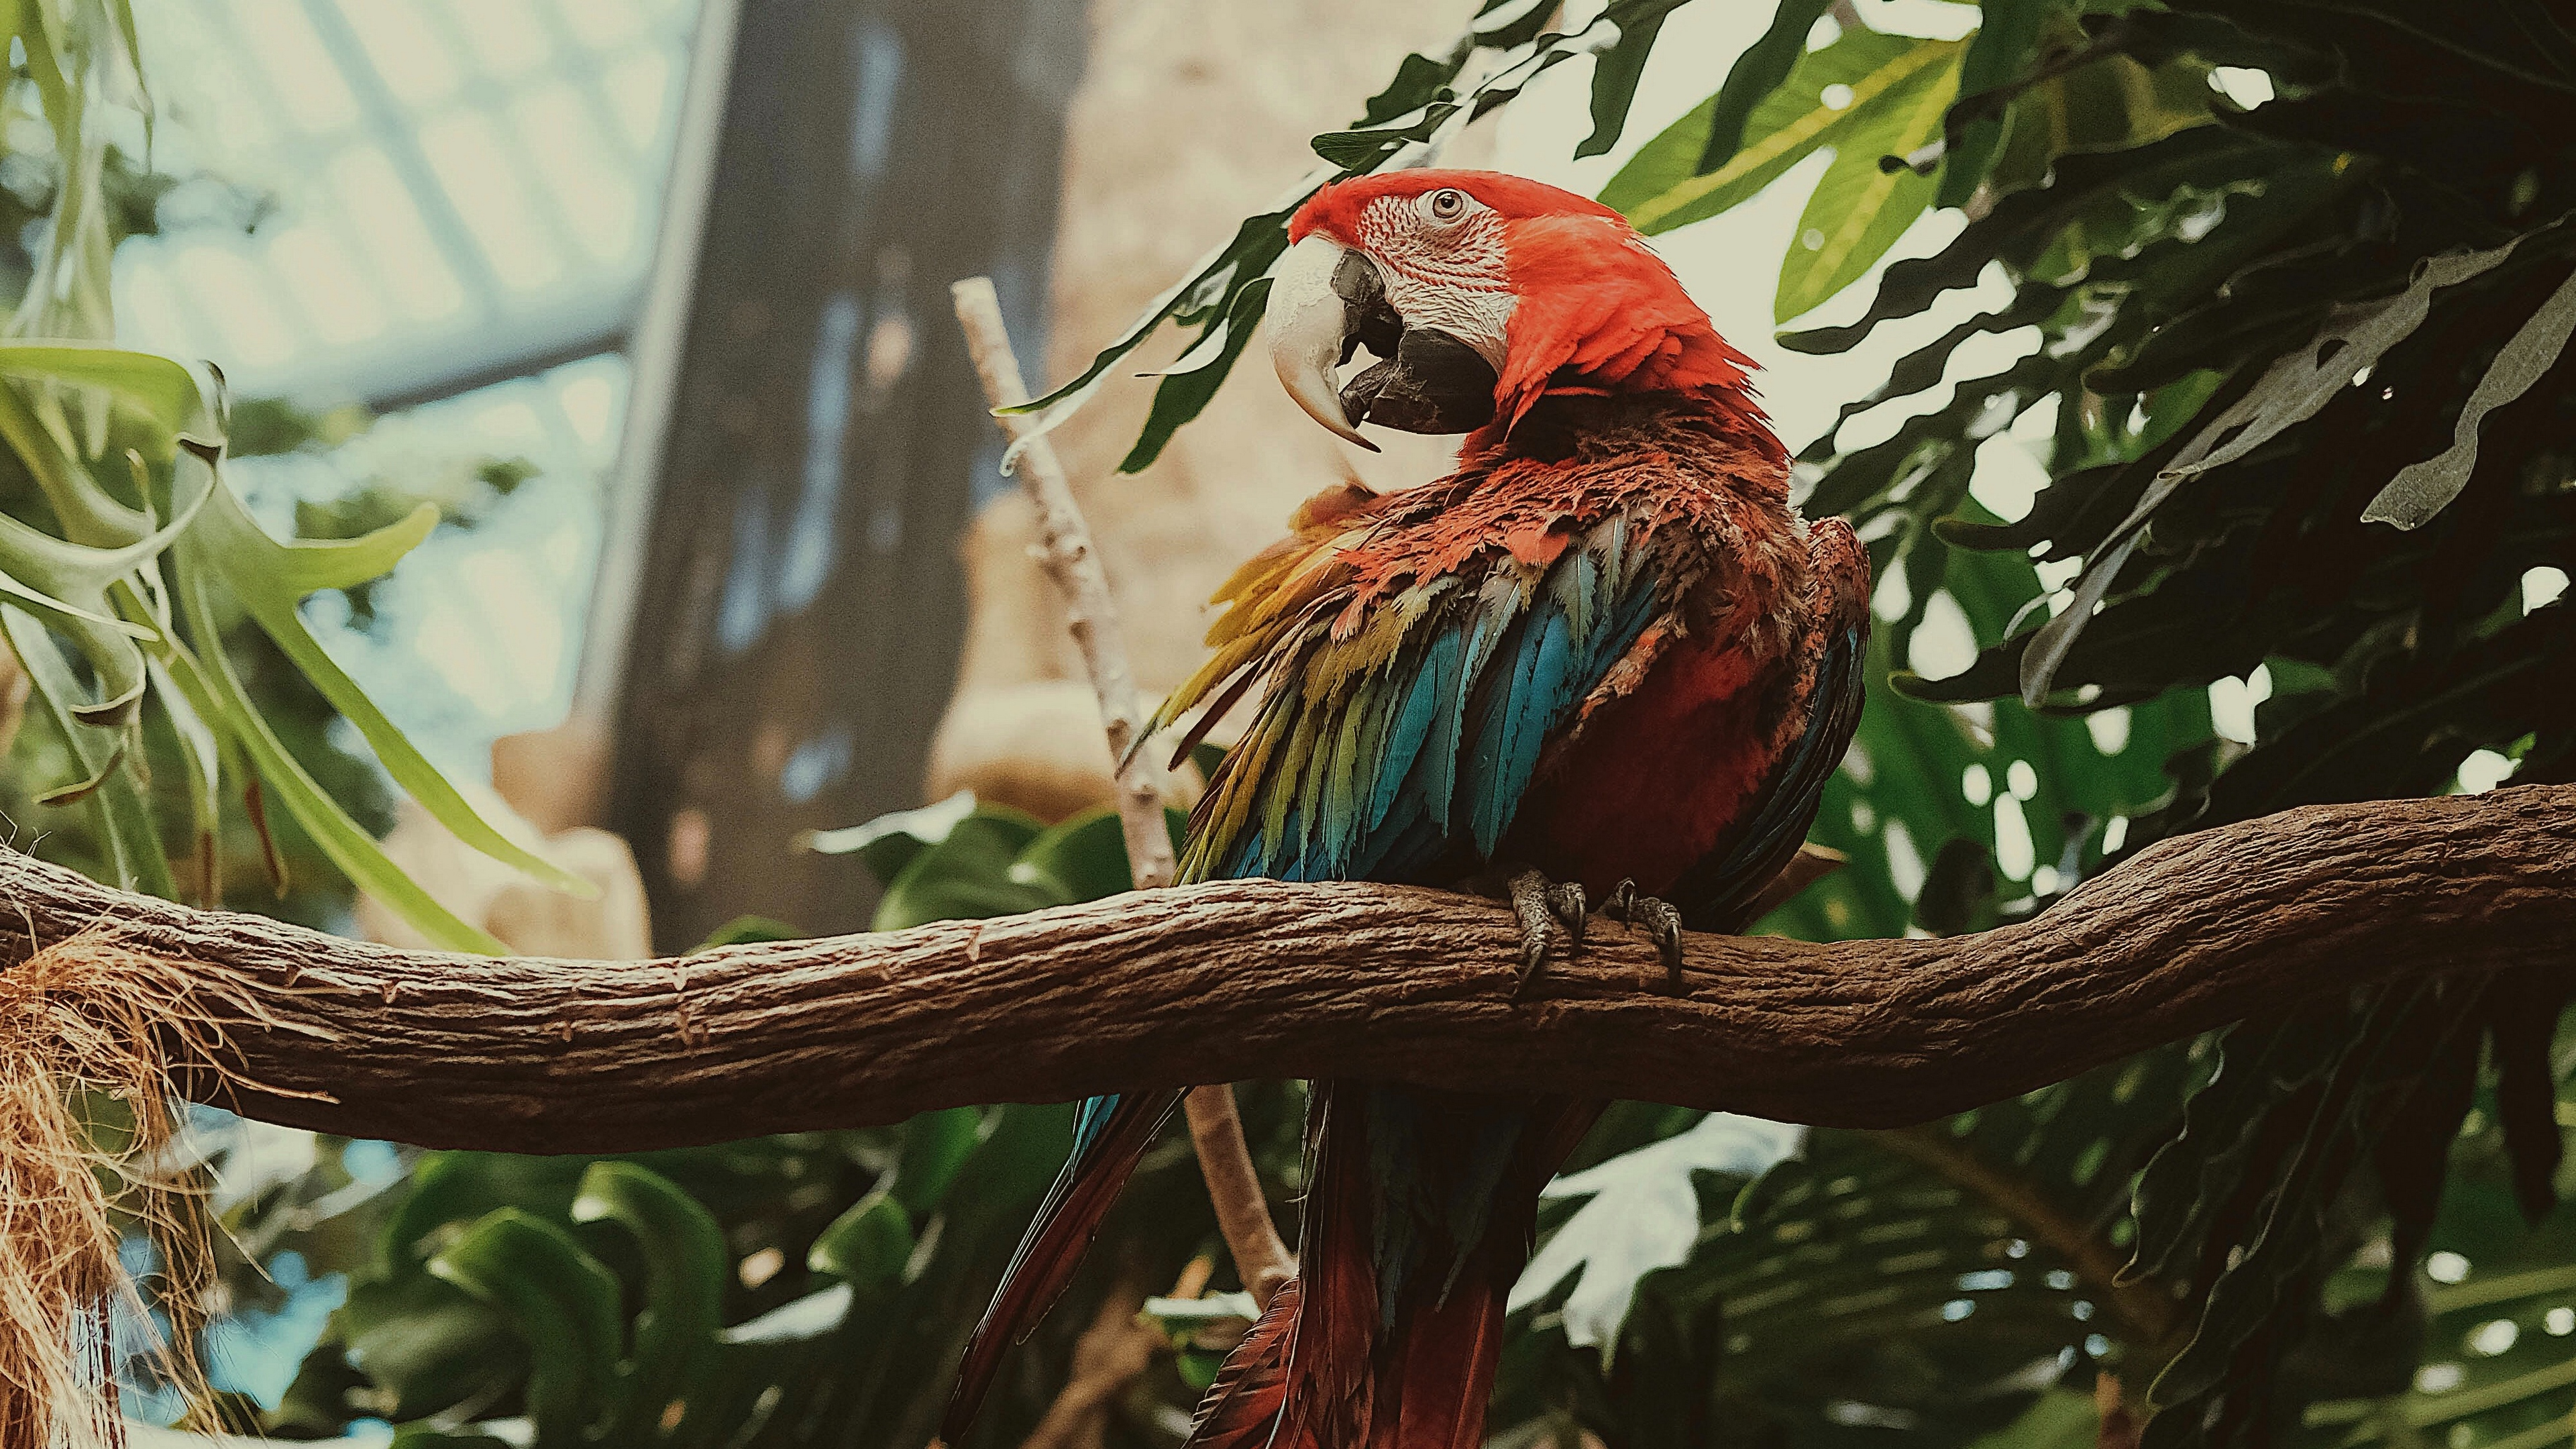 macaw parrot bird colorful 4k 1542241448 - macaw, parrot, bird, colorful 4k - Parrot, Macaw, Bird